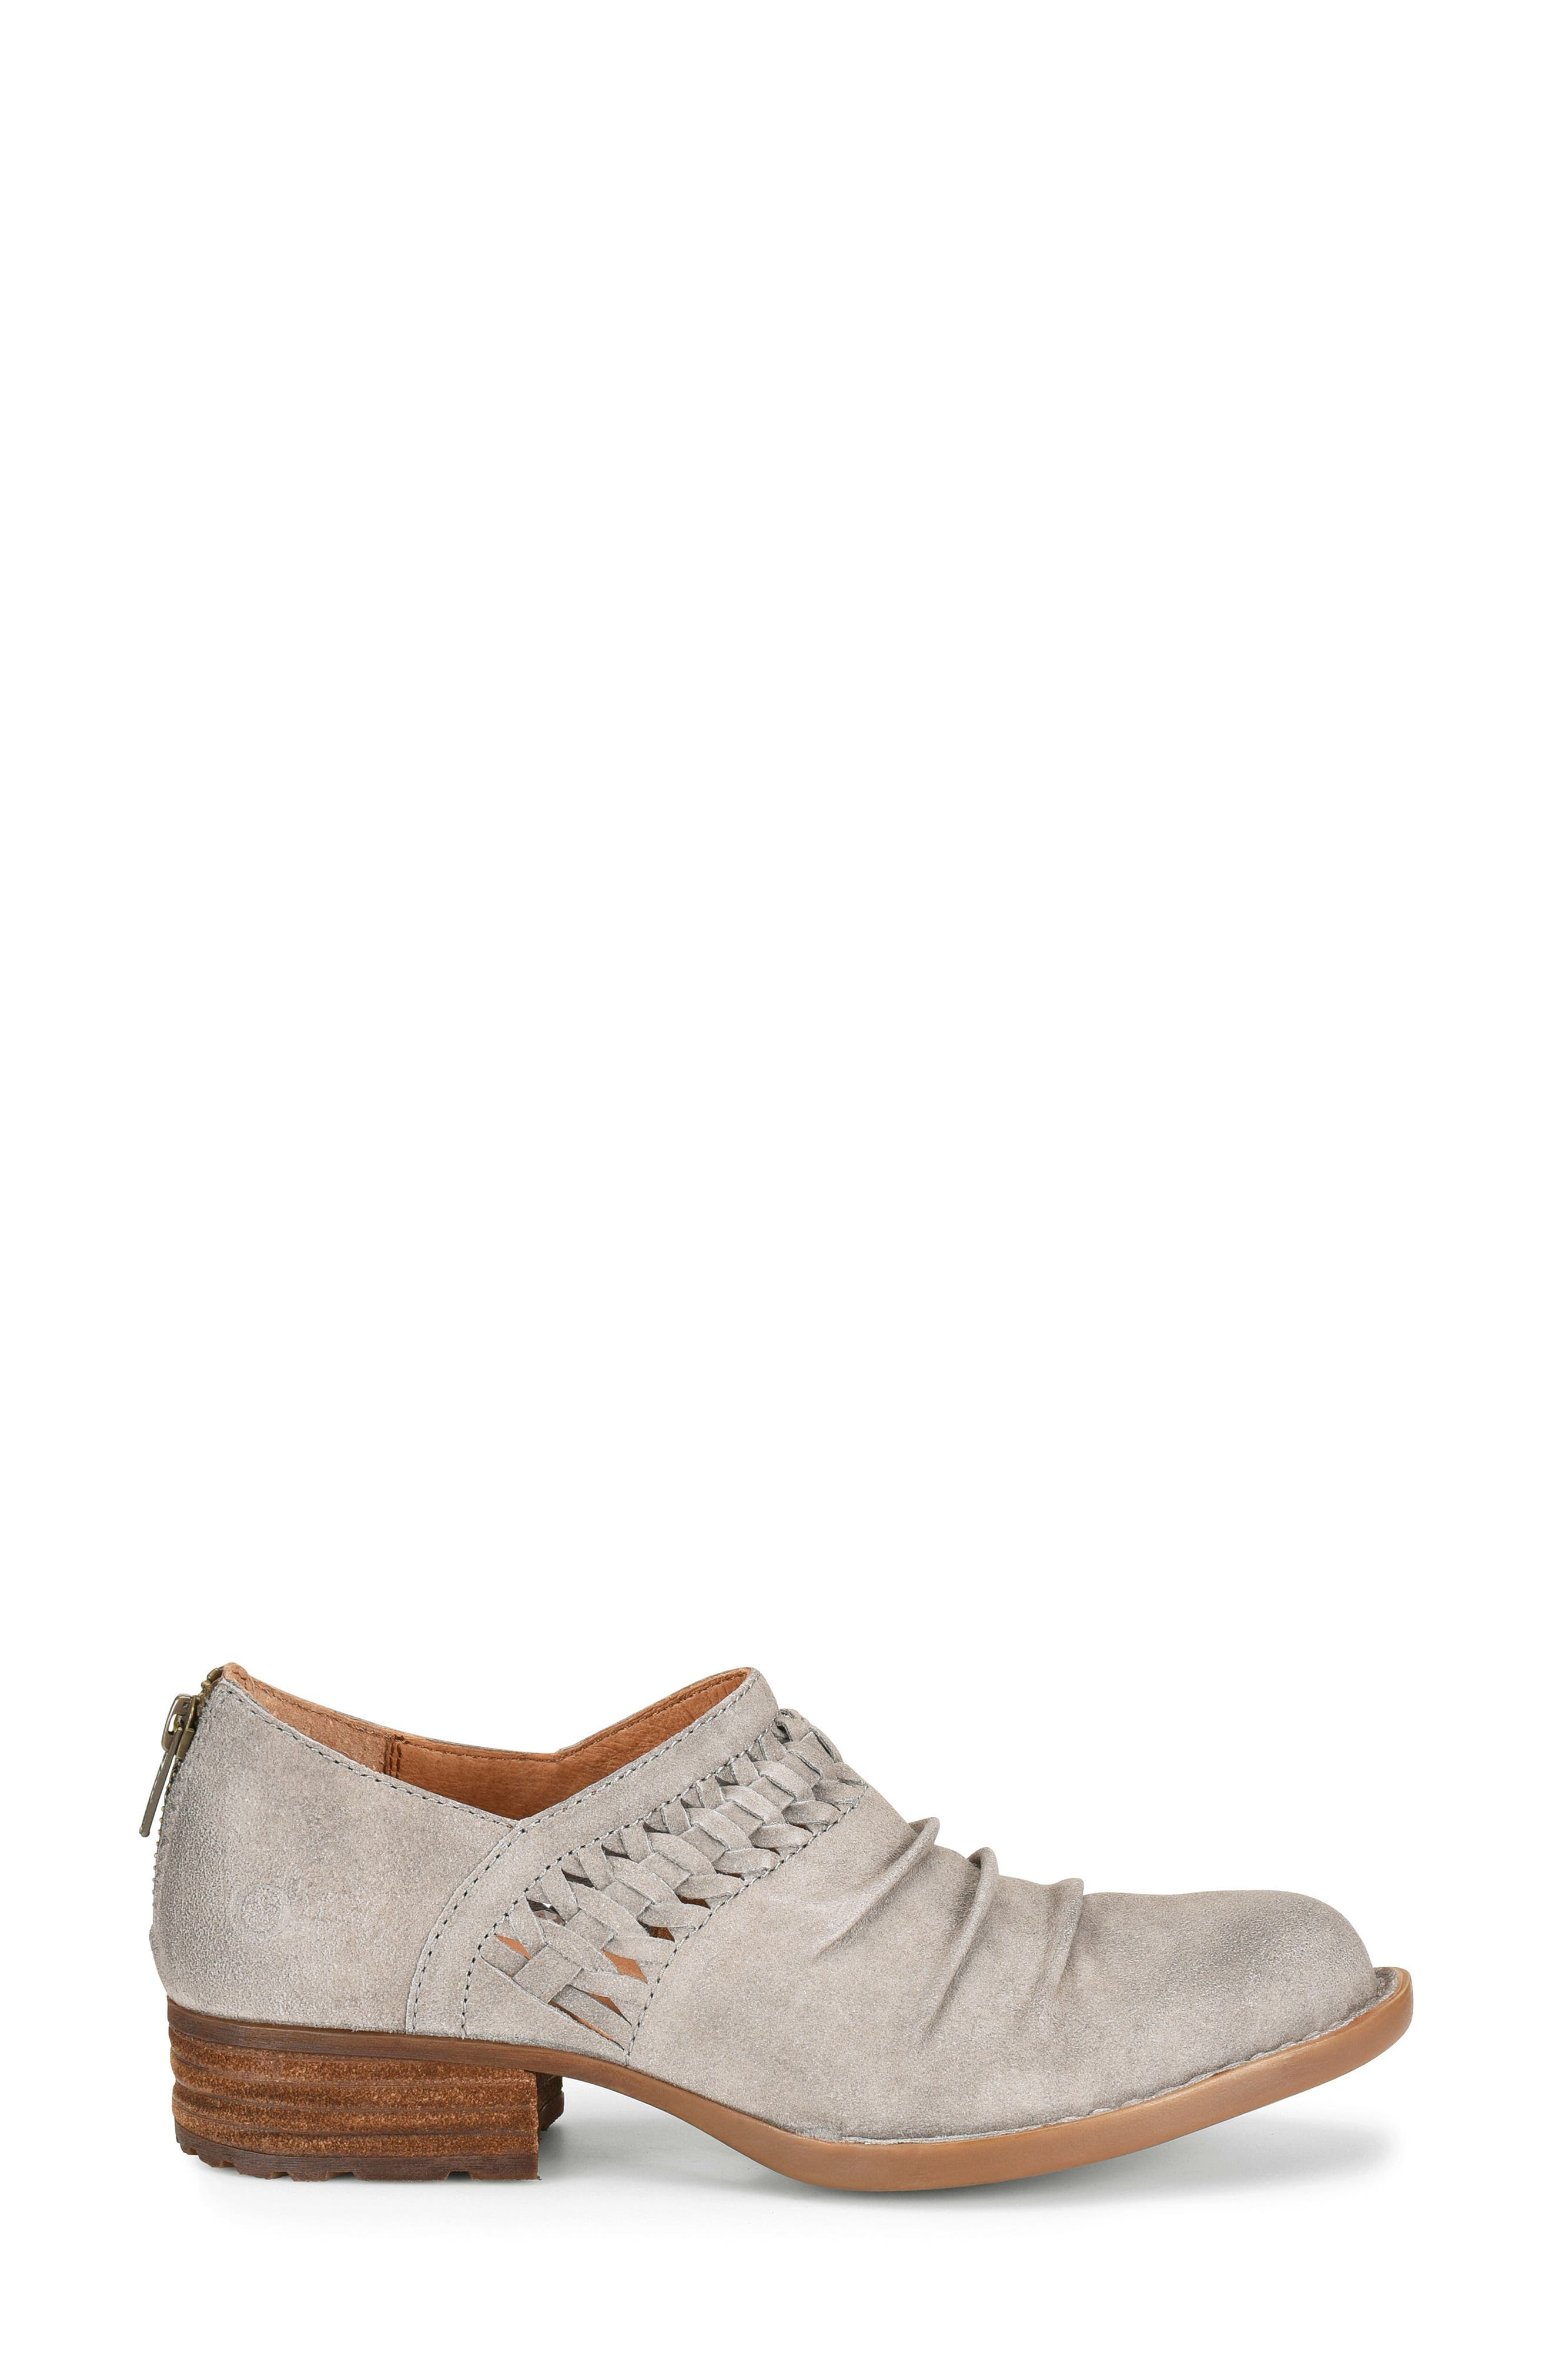 Born Katharina Bootie,                             Alternate thumbnail 3, color,                             Grey Suede